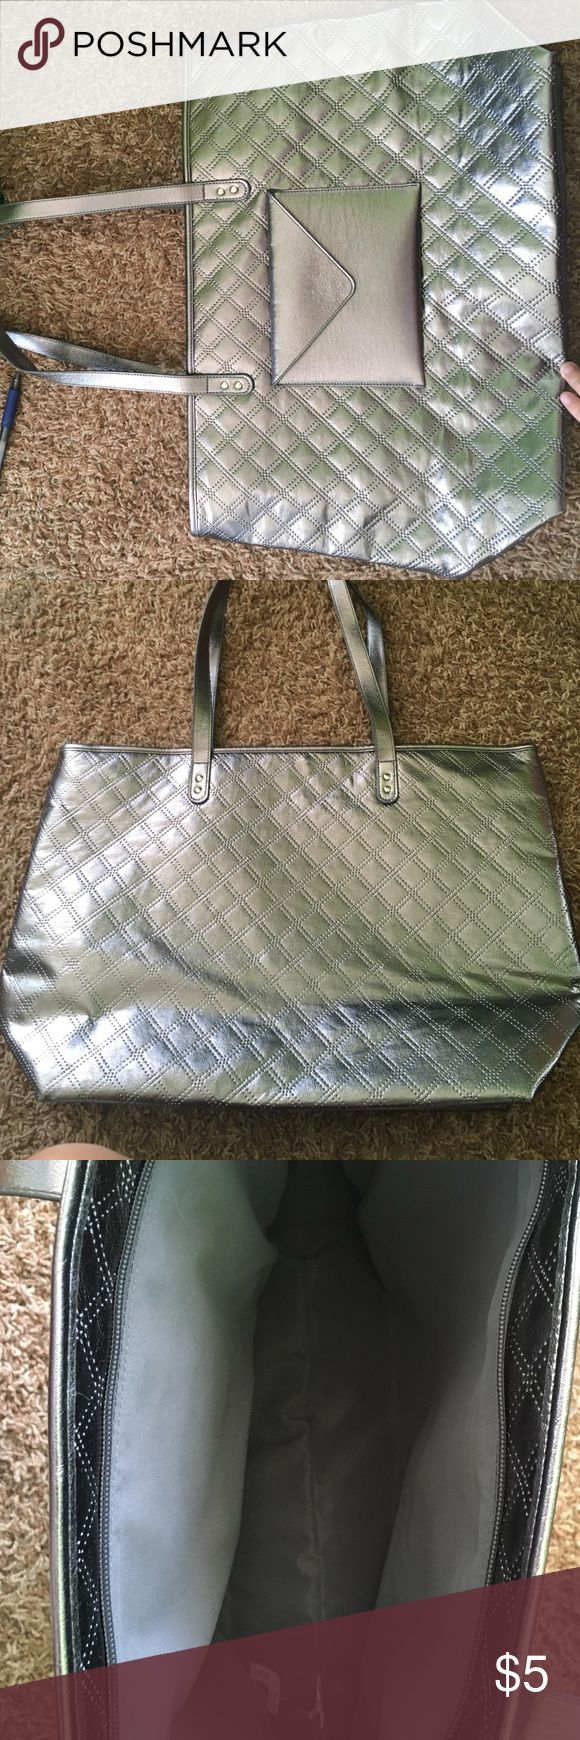 Silver Tote Bag Shiny silver tote bag I originally got from bath and body works. Brand new with tags. Comment if interested in measurements. Bags Totes